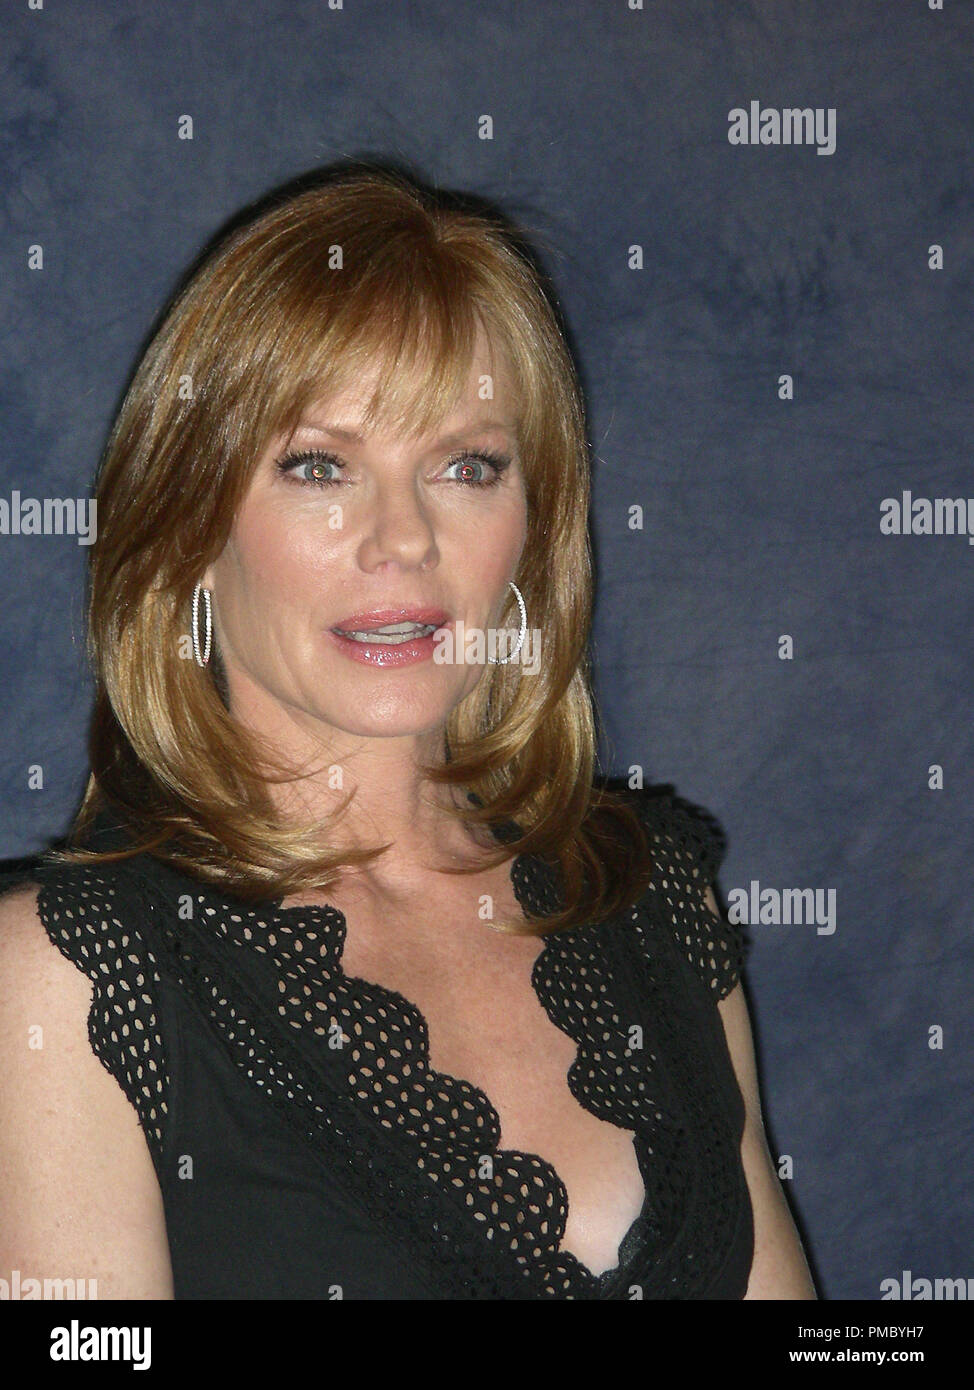 Press conference Portrait of Marg Helgenberger  05/21/2007 © JRC Photo Library/The Hollywood Archive (All Rights Reserved)  File Reference # 33480 045THA Stock Photo